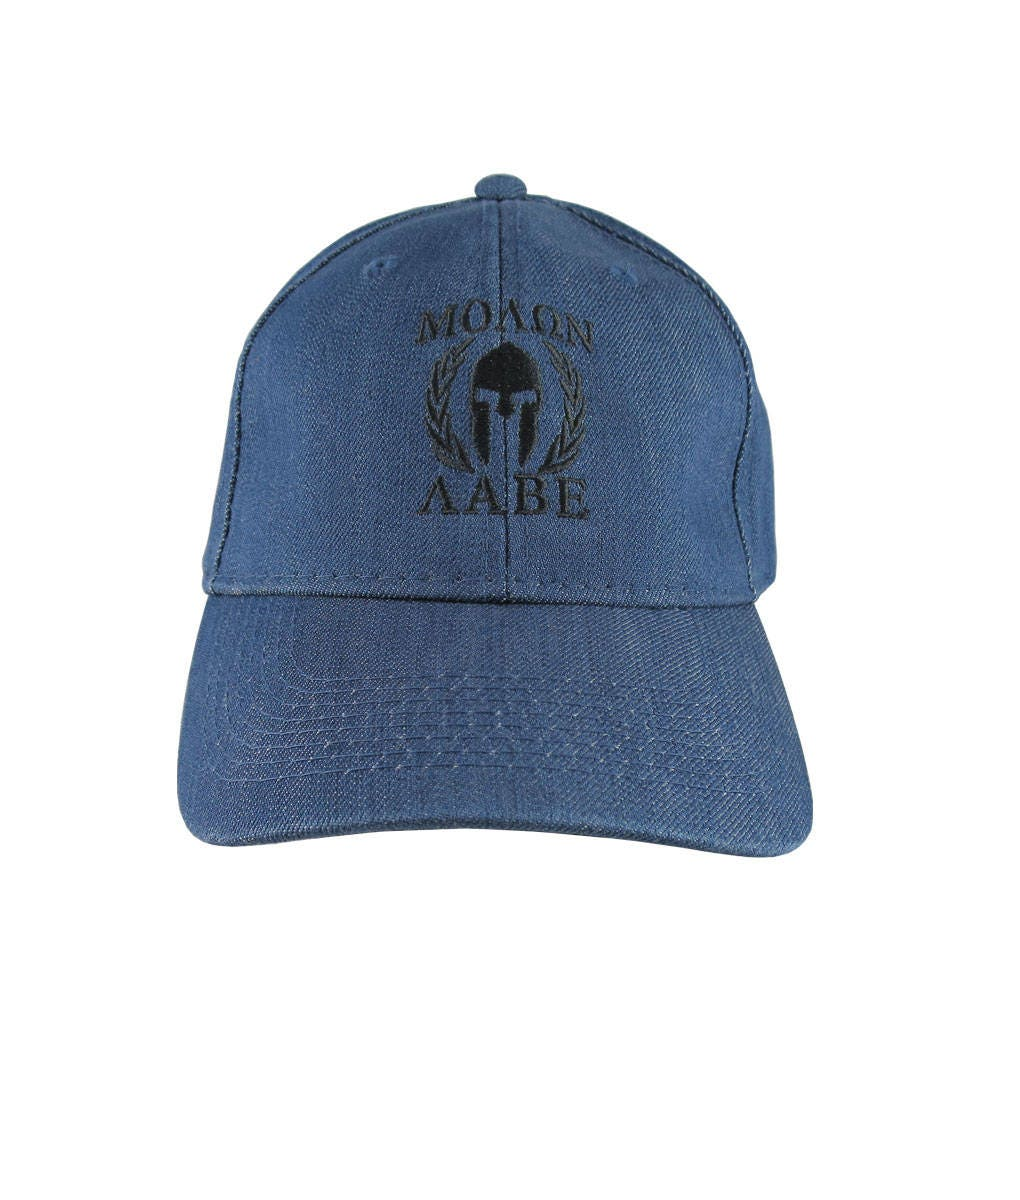 ddbe2035 Molon Labe Spartan Warrior Mask in Laurels Black Embroidery on an  Adjustable Blue Denim Structured Baseball Cap